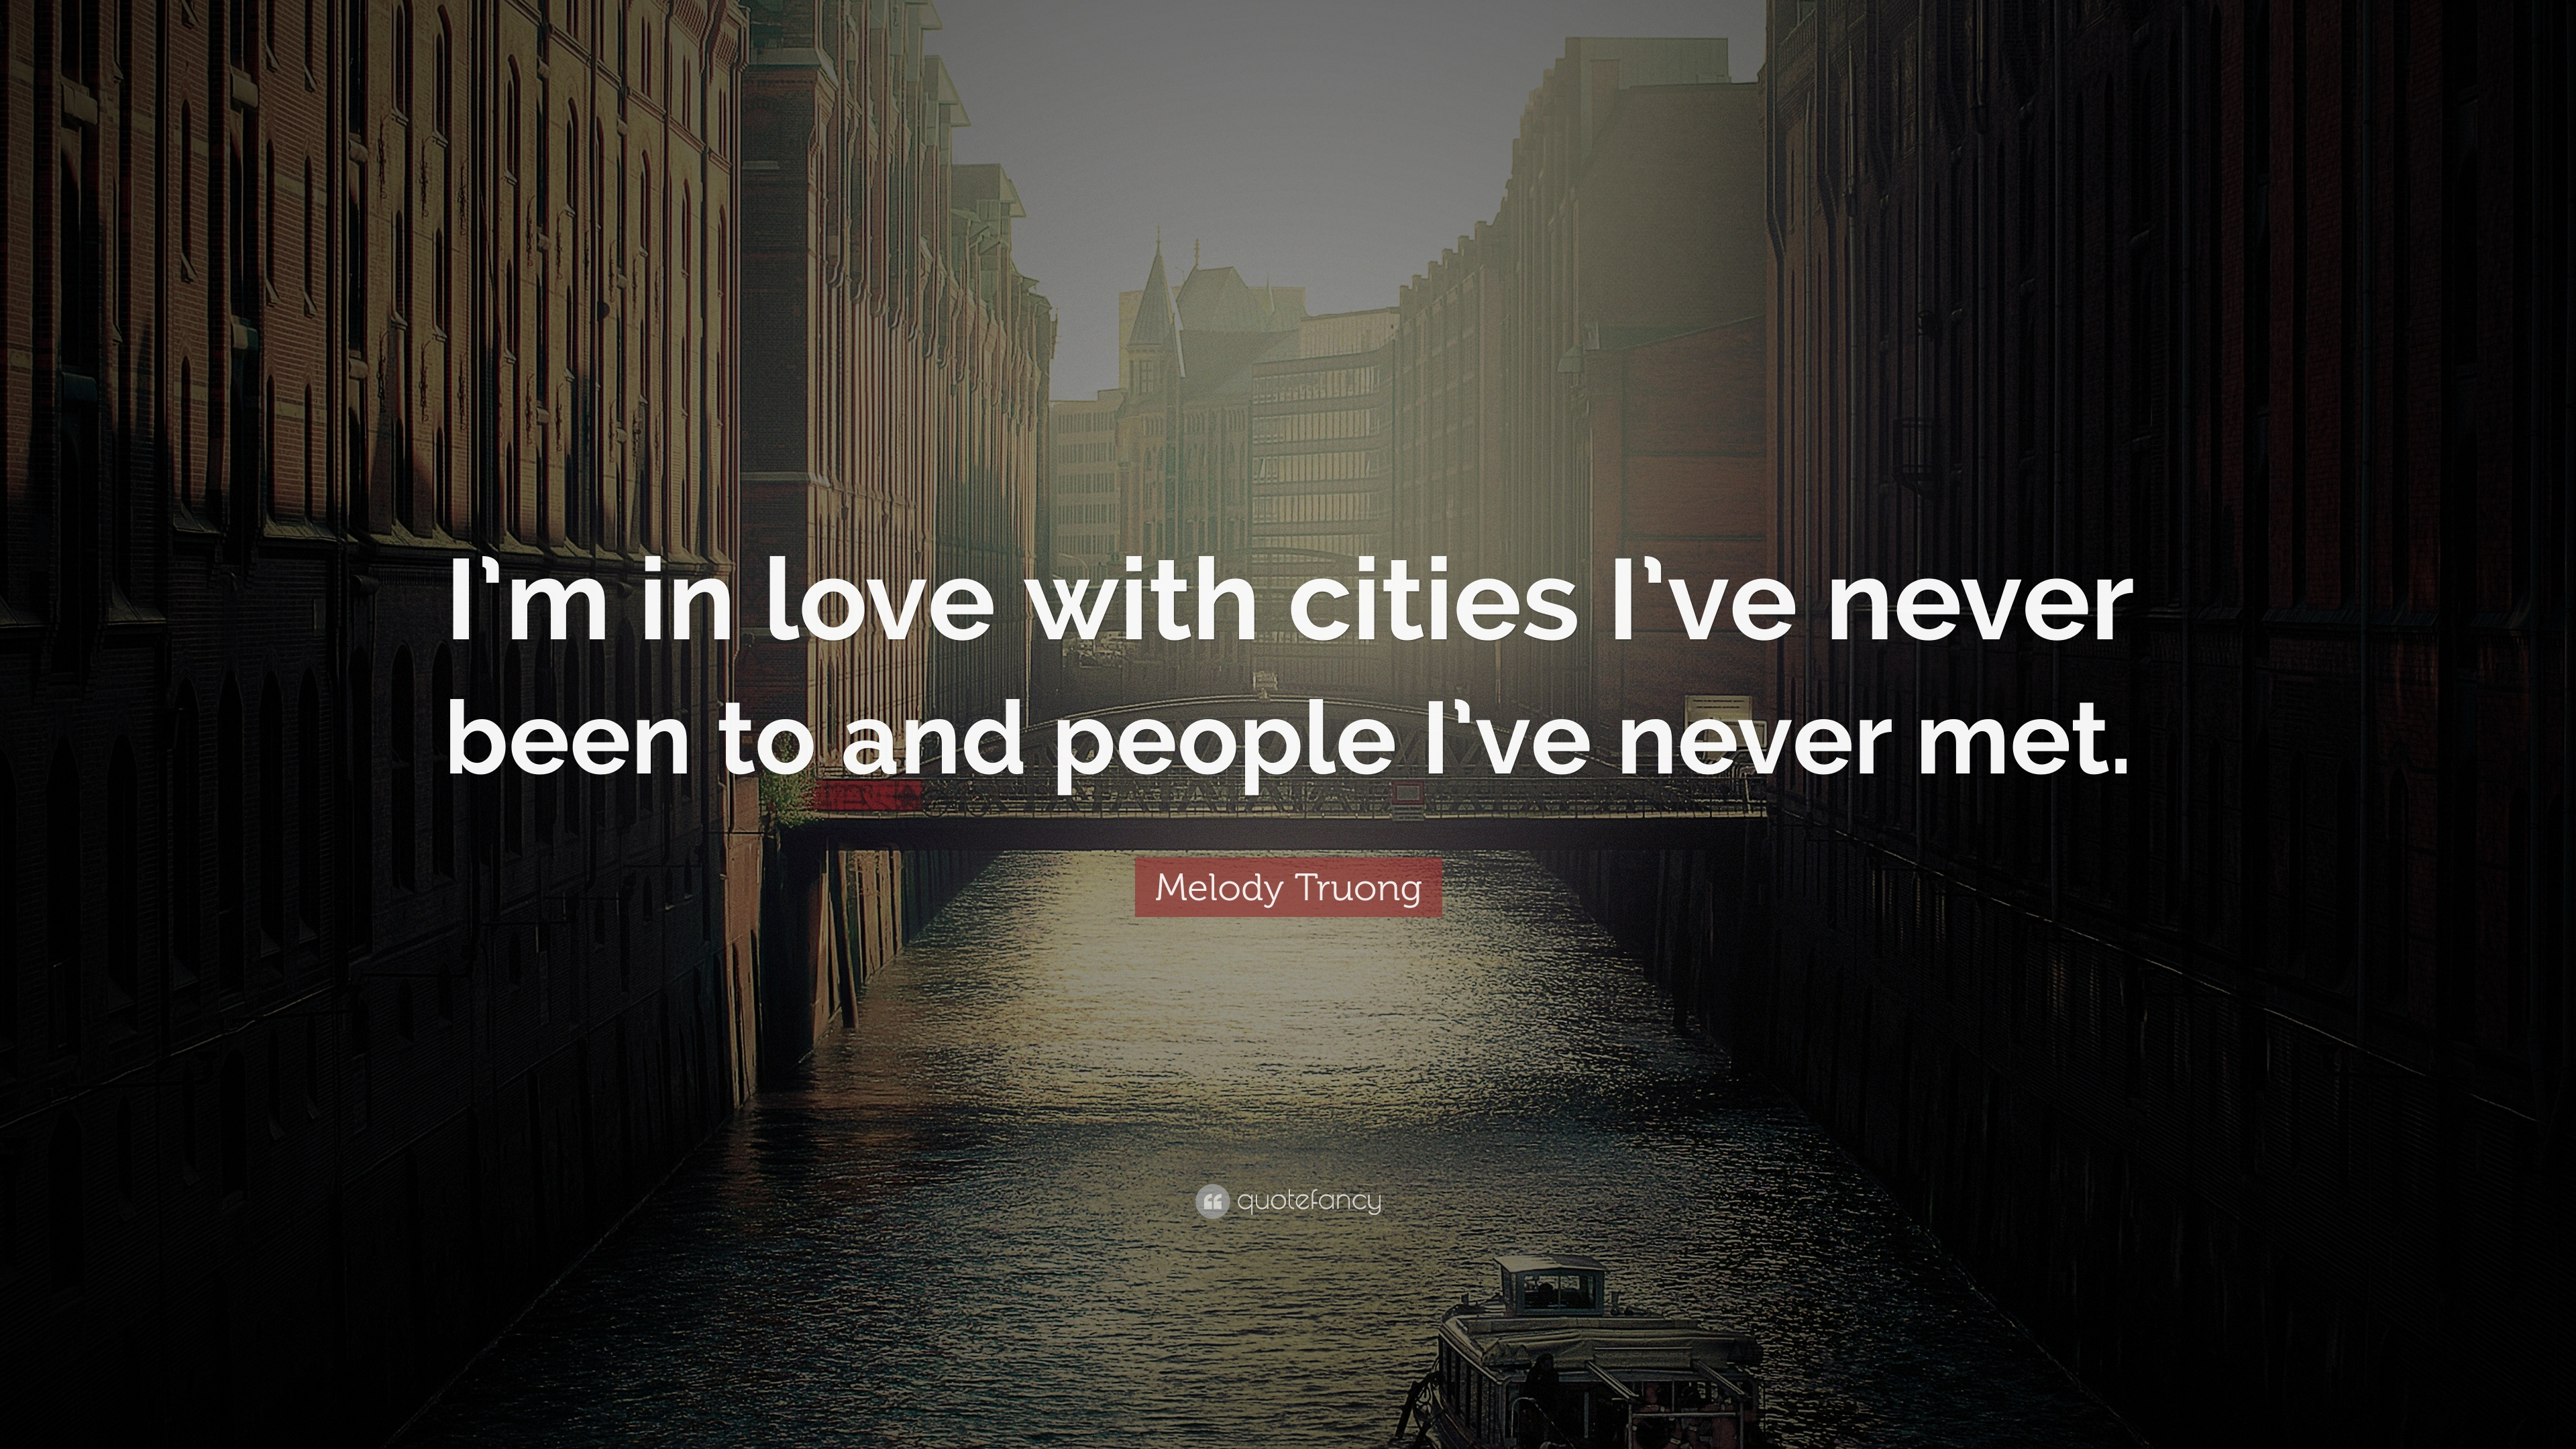 melody truong quote i m in love with cities i ve never been to and